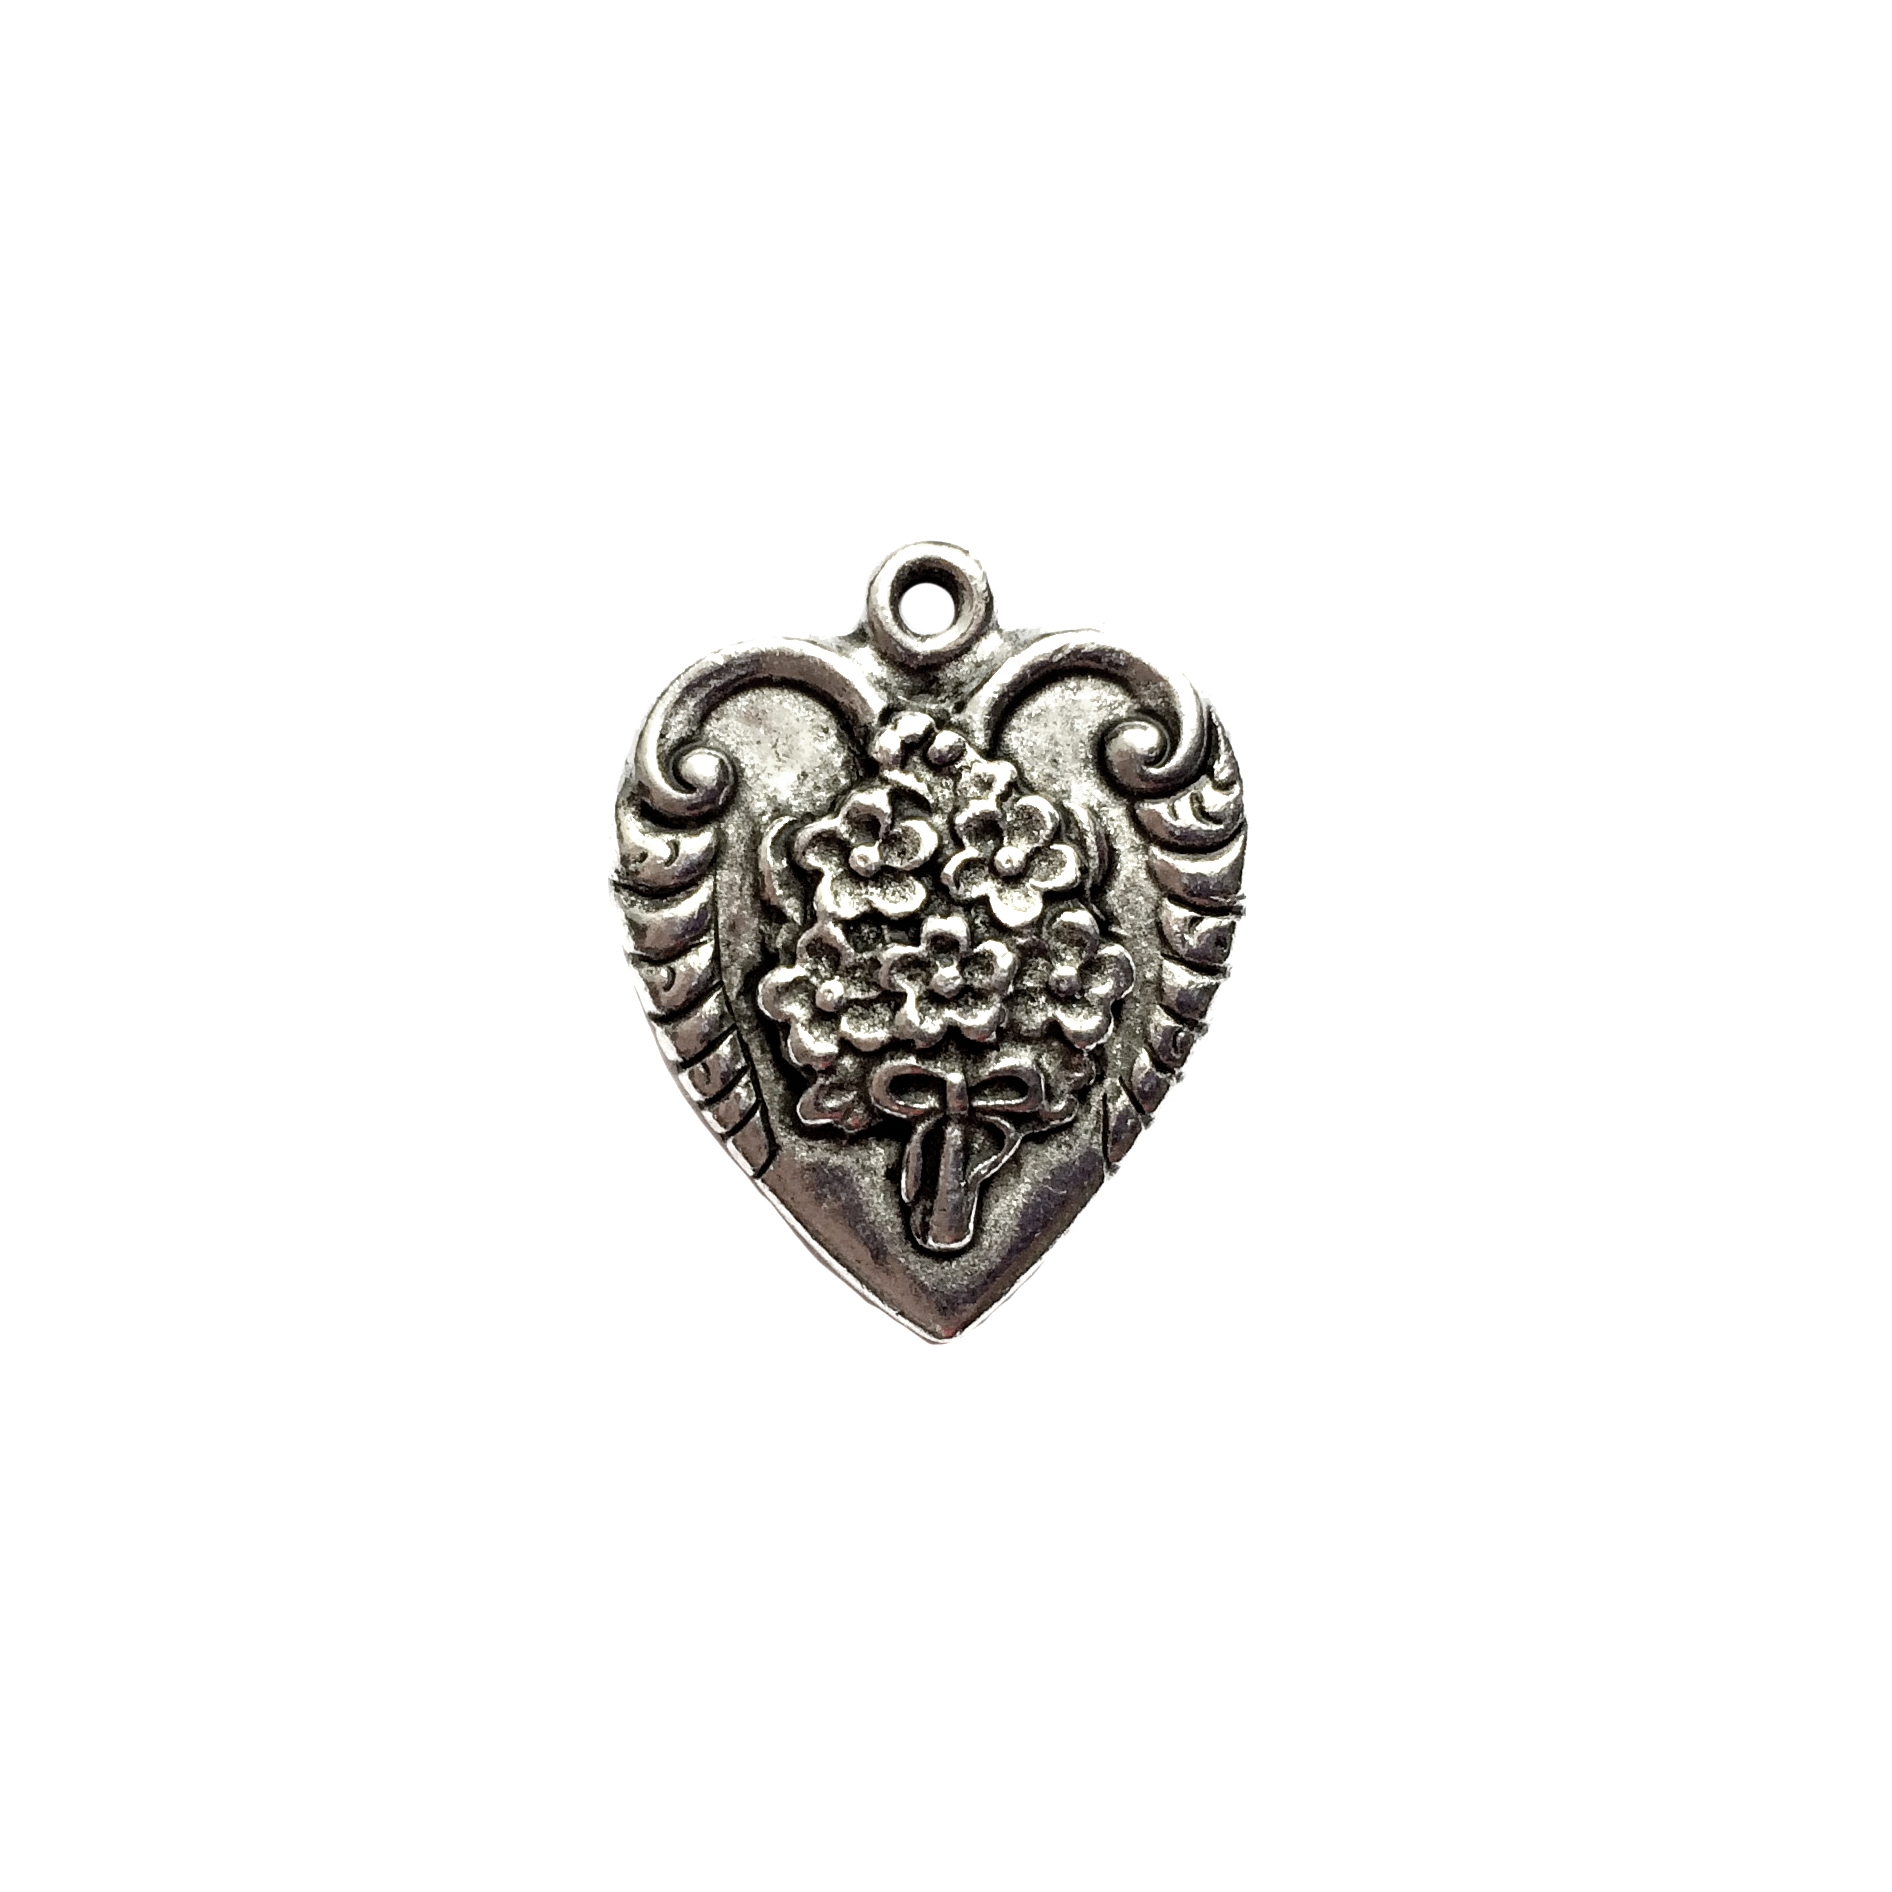 old silver pewter, floral bouquet pendant, 01021, heart charm, vintage, B'sue by 1928, lead free pewter castings, cast pewter jewelry findings, made in the USA, flower charm, heart charm, 1928 Company, B'sue Boutiques